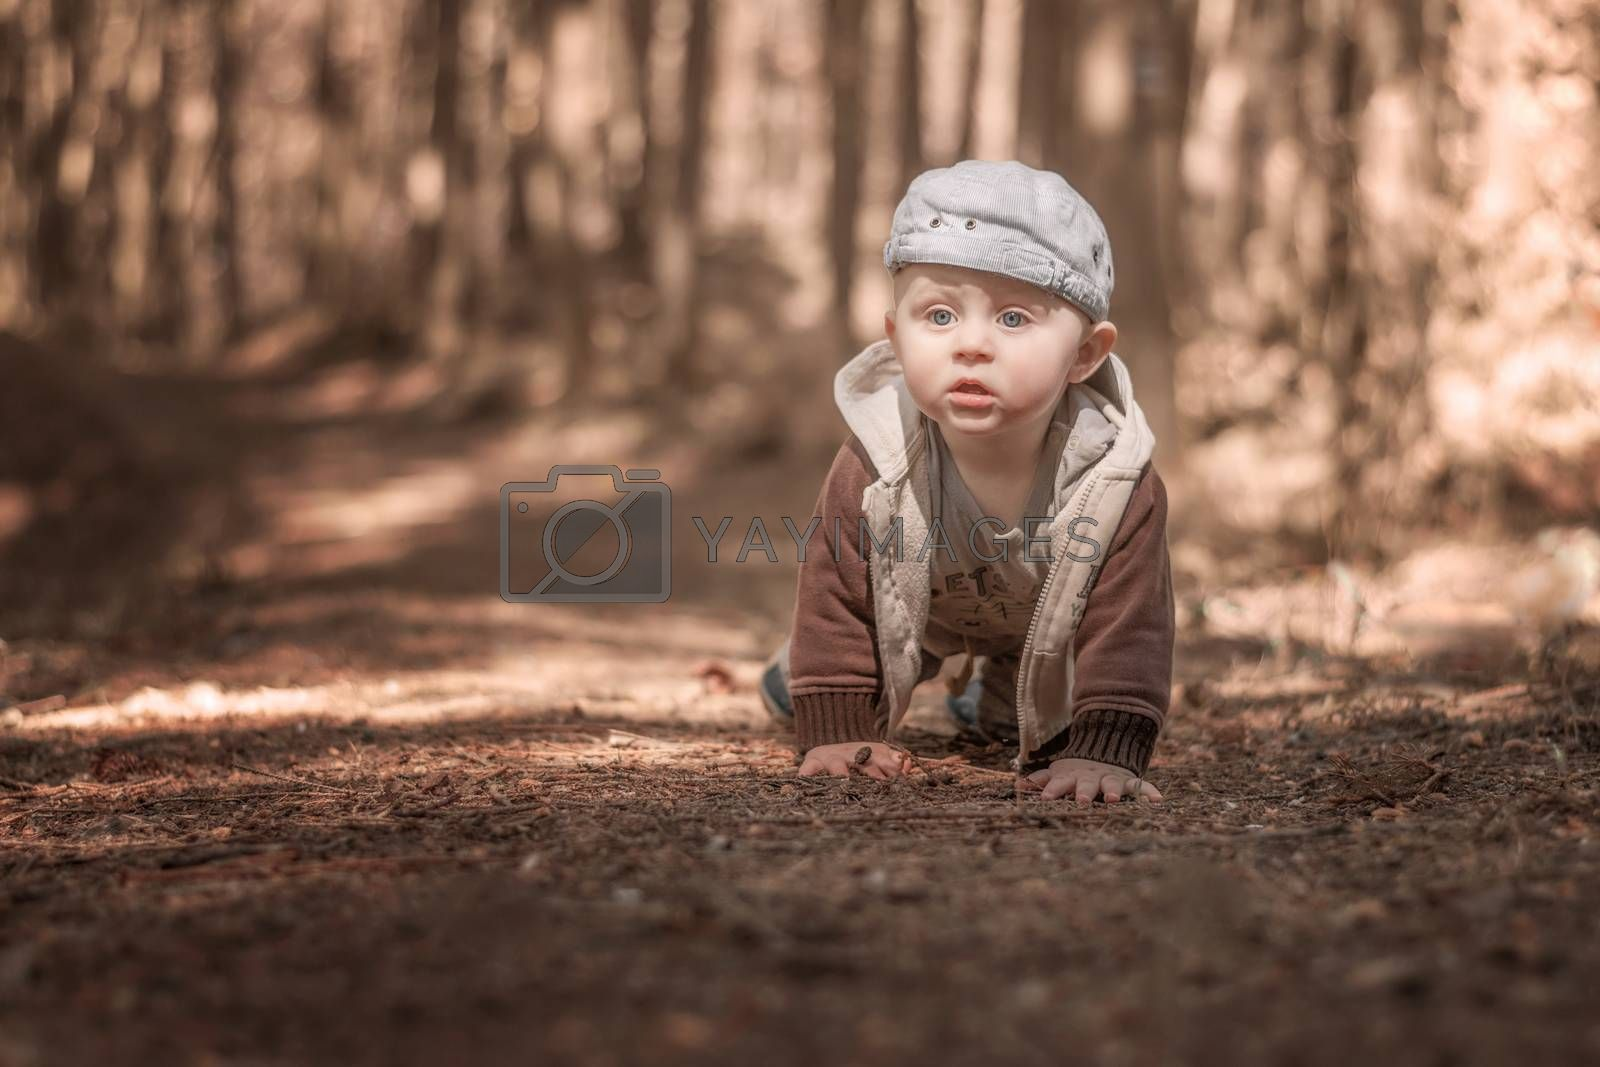 A lone little caucasian baby boy climbs a forest path. Blurred background. Monochrome tuning.